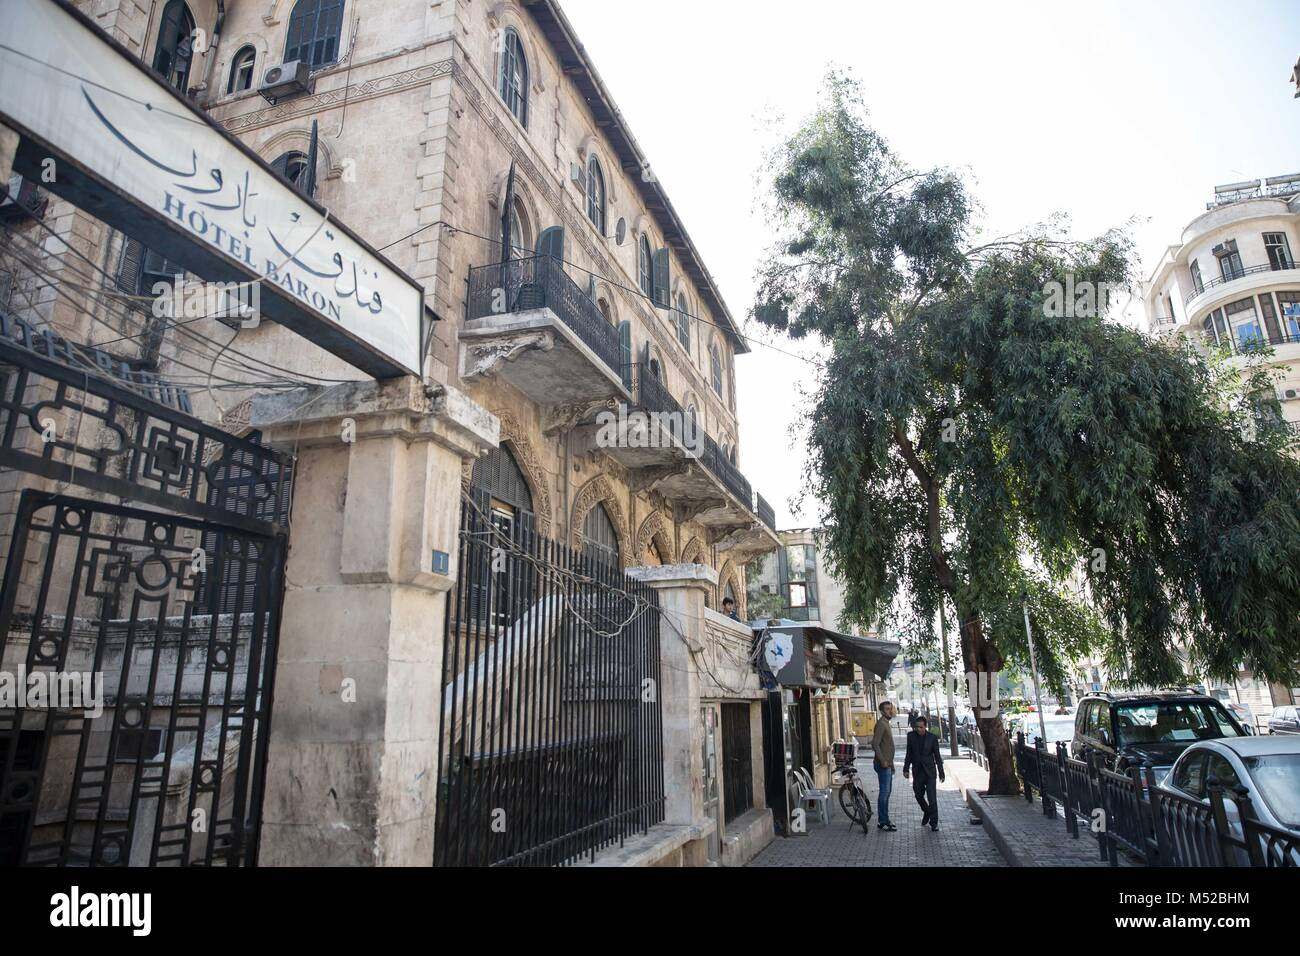 Aleppo's historic Baron Hotel was founded in 1911 by two Armenian brothers. Guests included David Rockefeller, - Stock Image